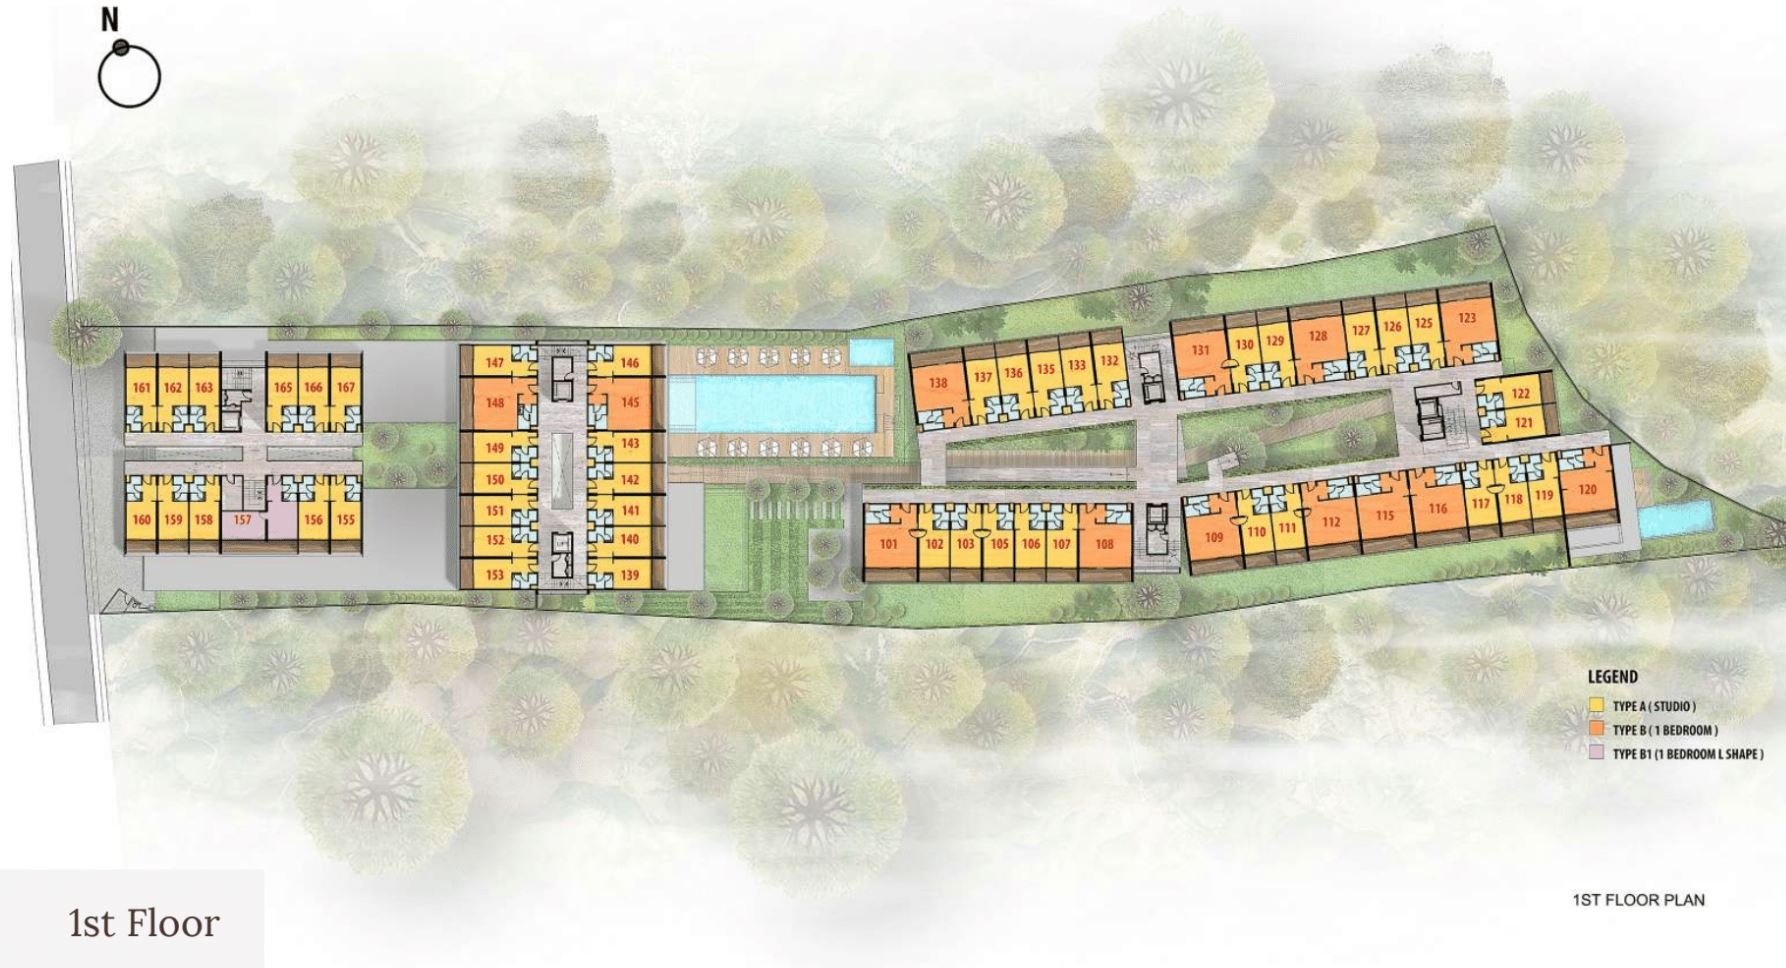 Citadines Berawa Beach Bali Site Plan 1st Floor